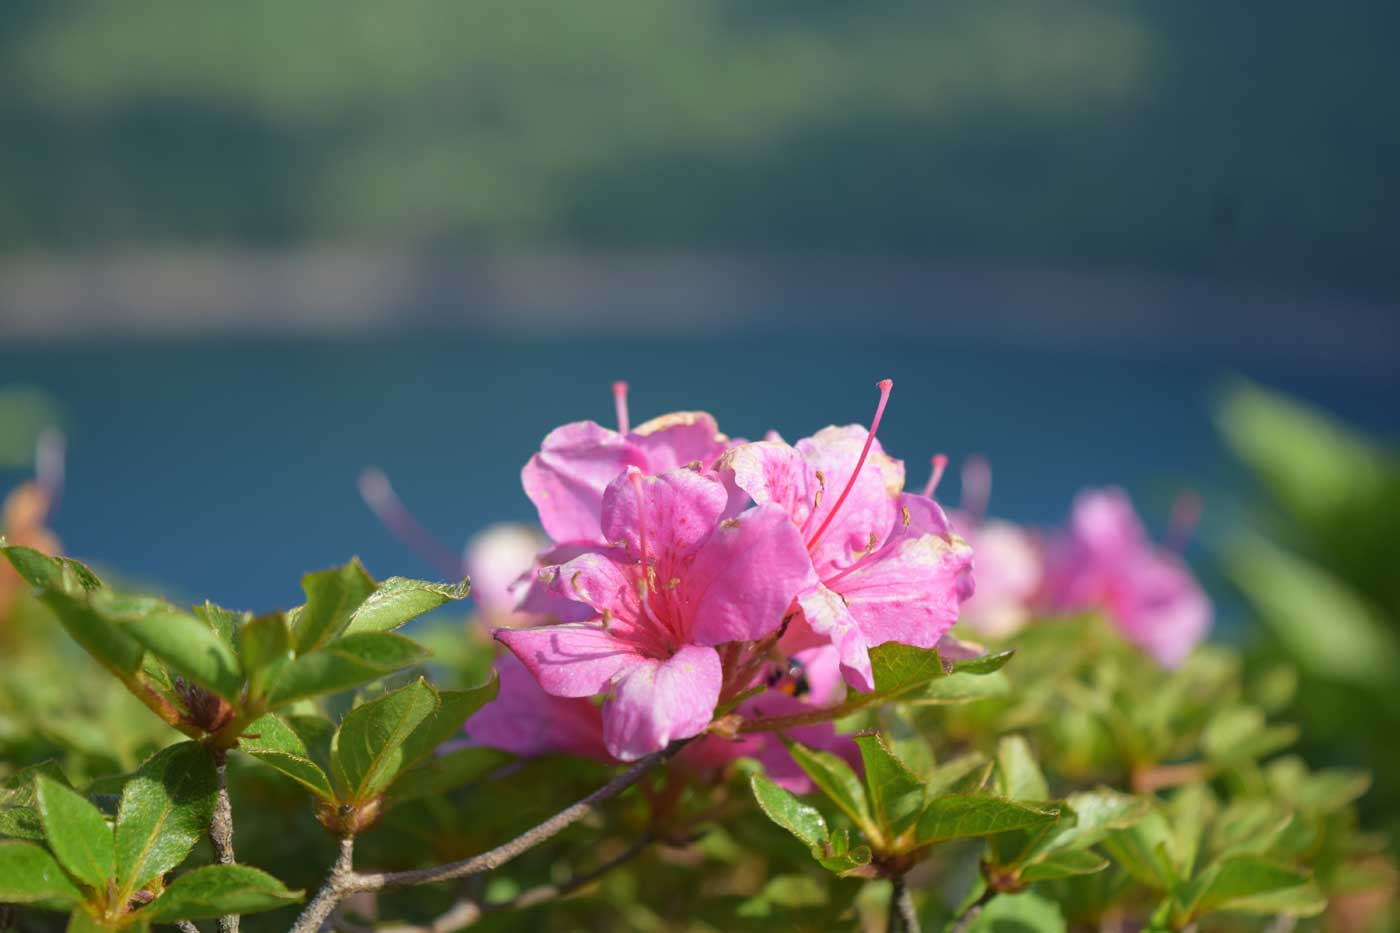 Flowers of <i>Rhododendron</i> x <i>obtusum</i> by Lake Onami.